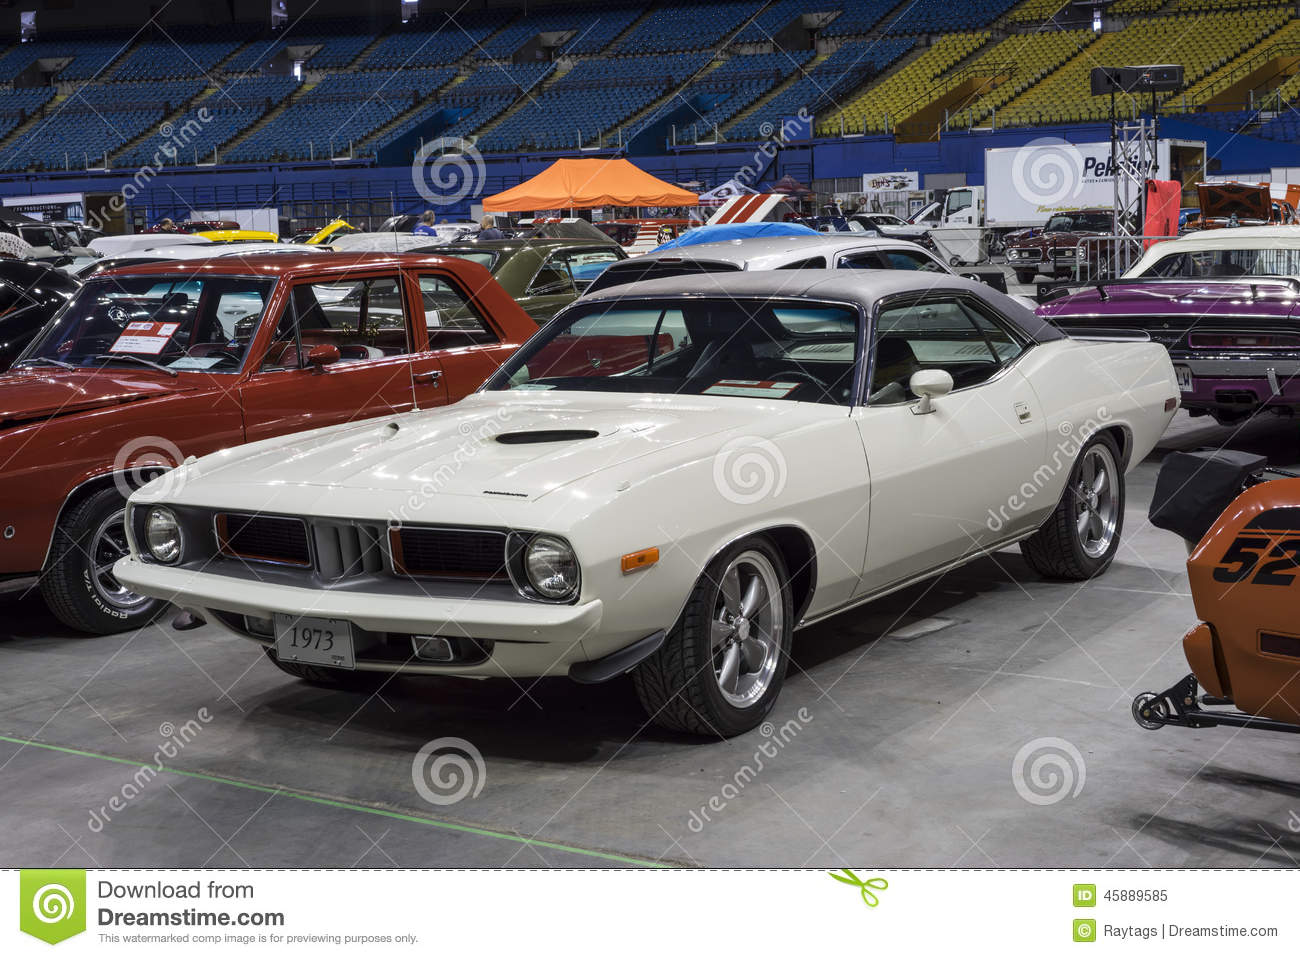 Plymouth barracuda editorial image  Image of musclecar